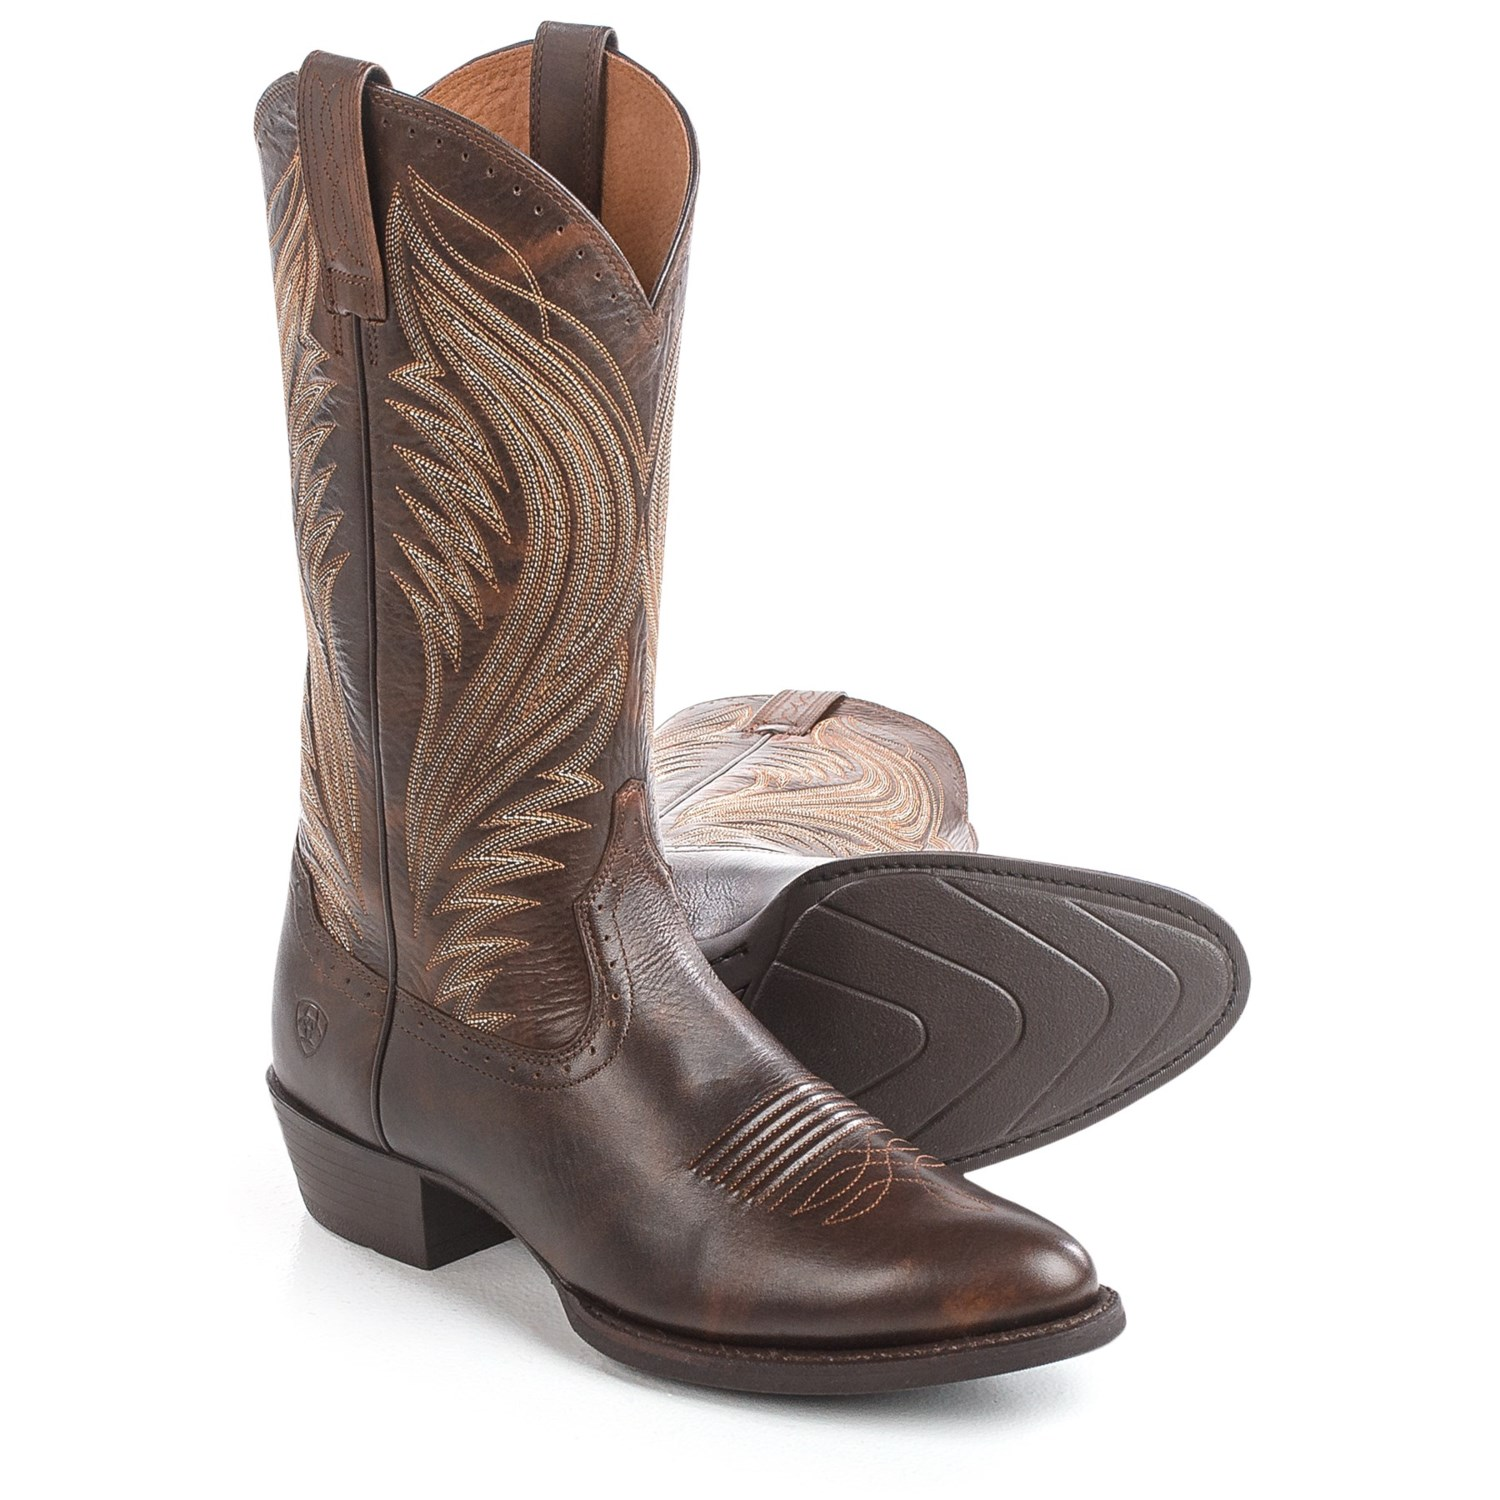 Ariat Boots On Sale - Cr Boot